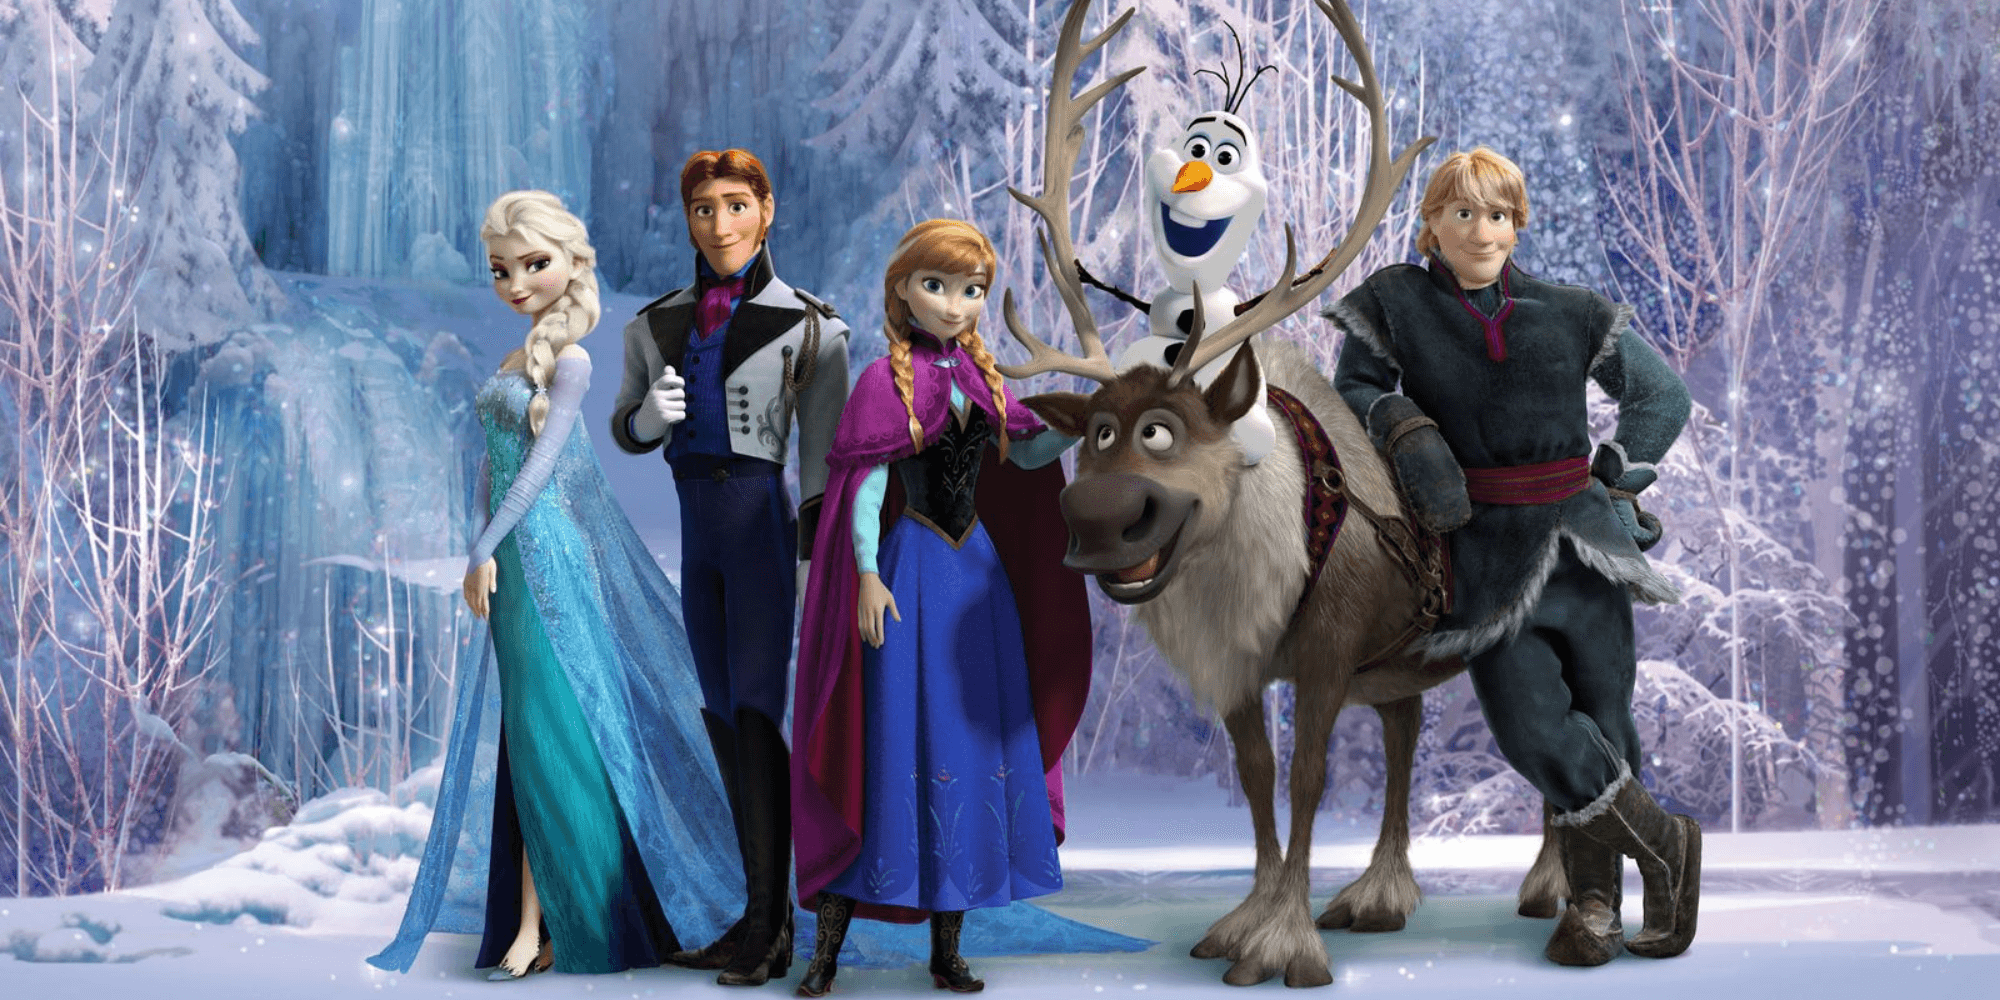 The characters from the first Frozen movie